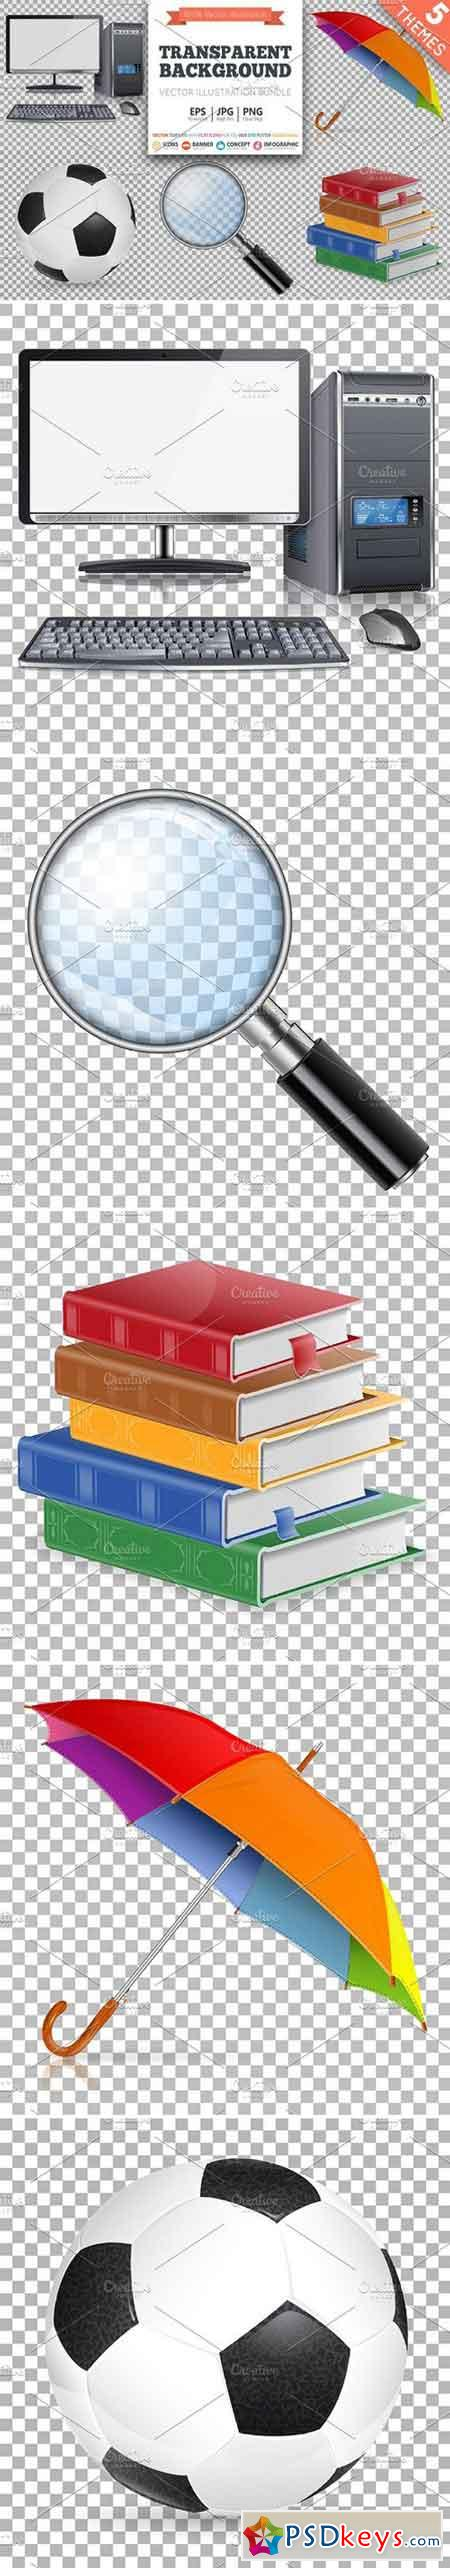 Objects on Transparent Background 2153981